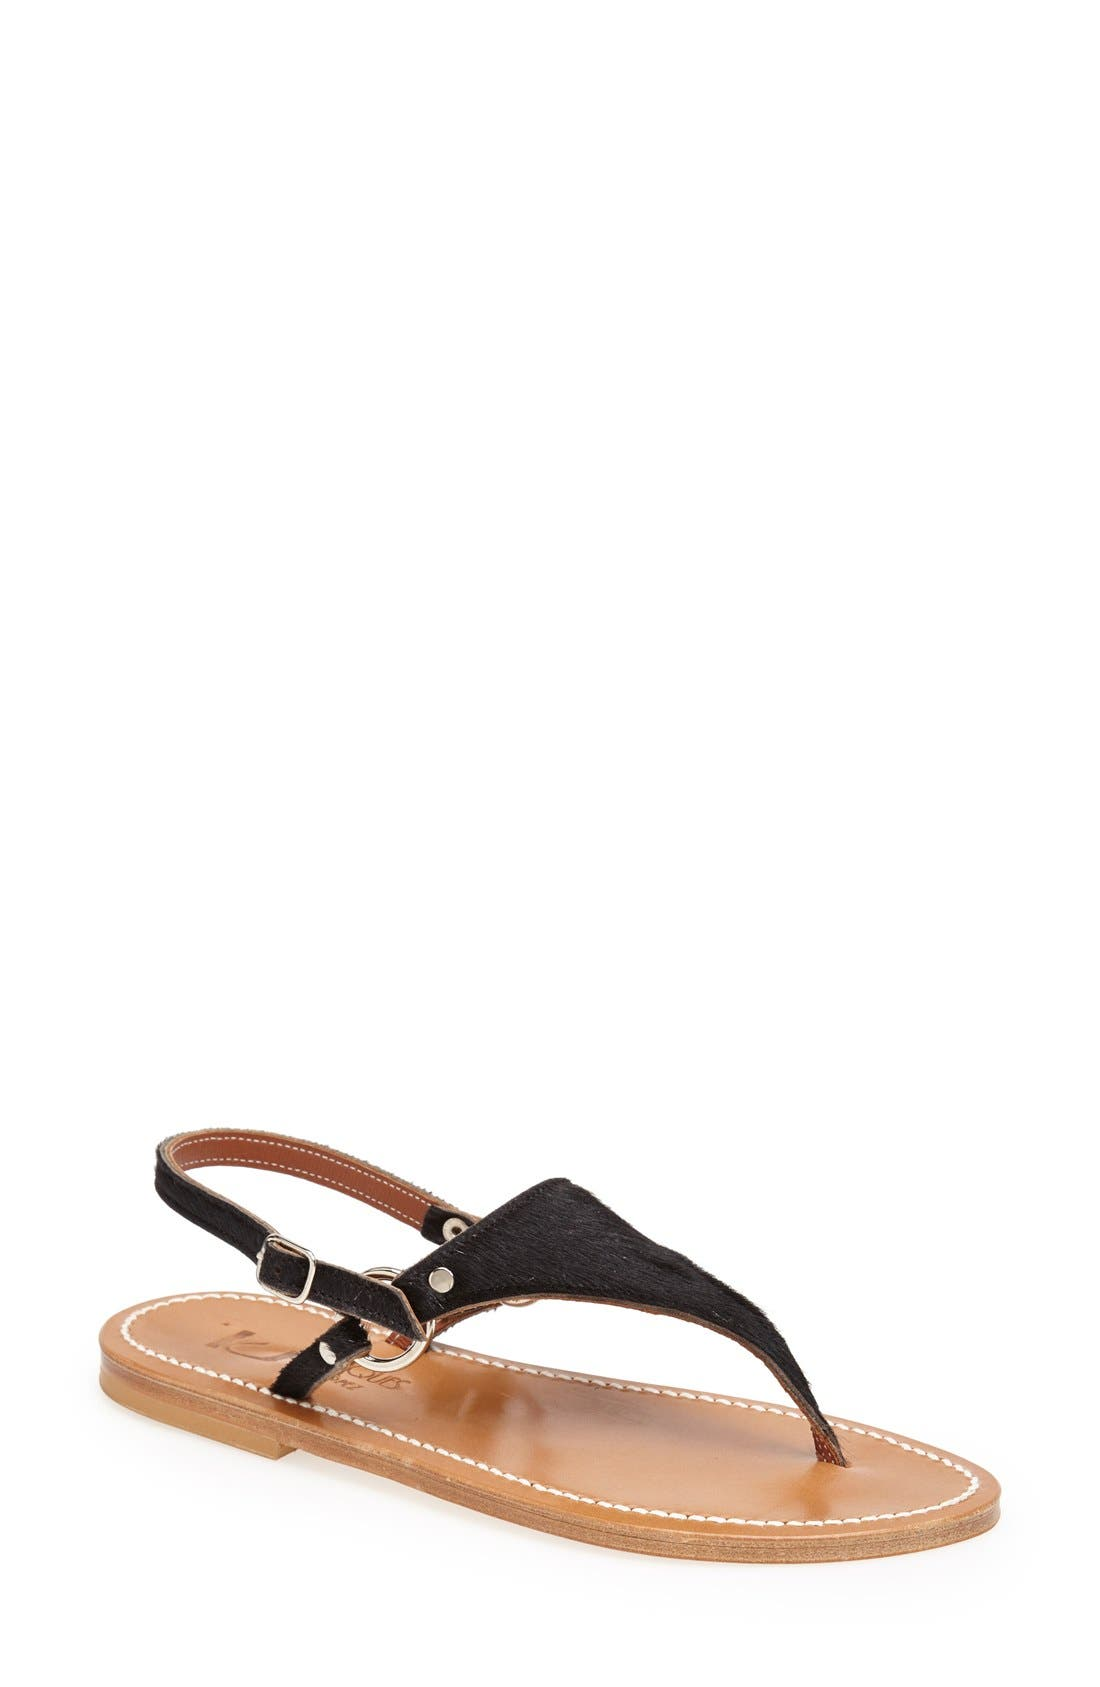 Alternate Image 1 Selected - K.Jacques St. Tropez 'Triton' V Strap Calf Hair Thong Sandal (Women)